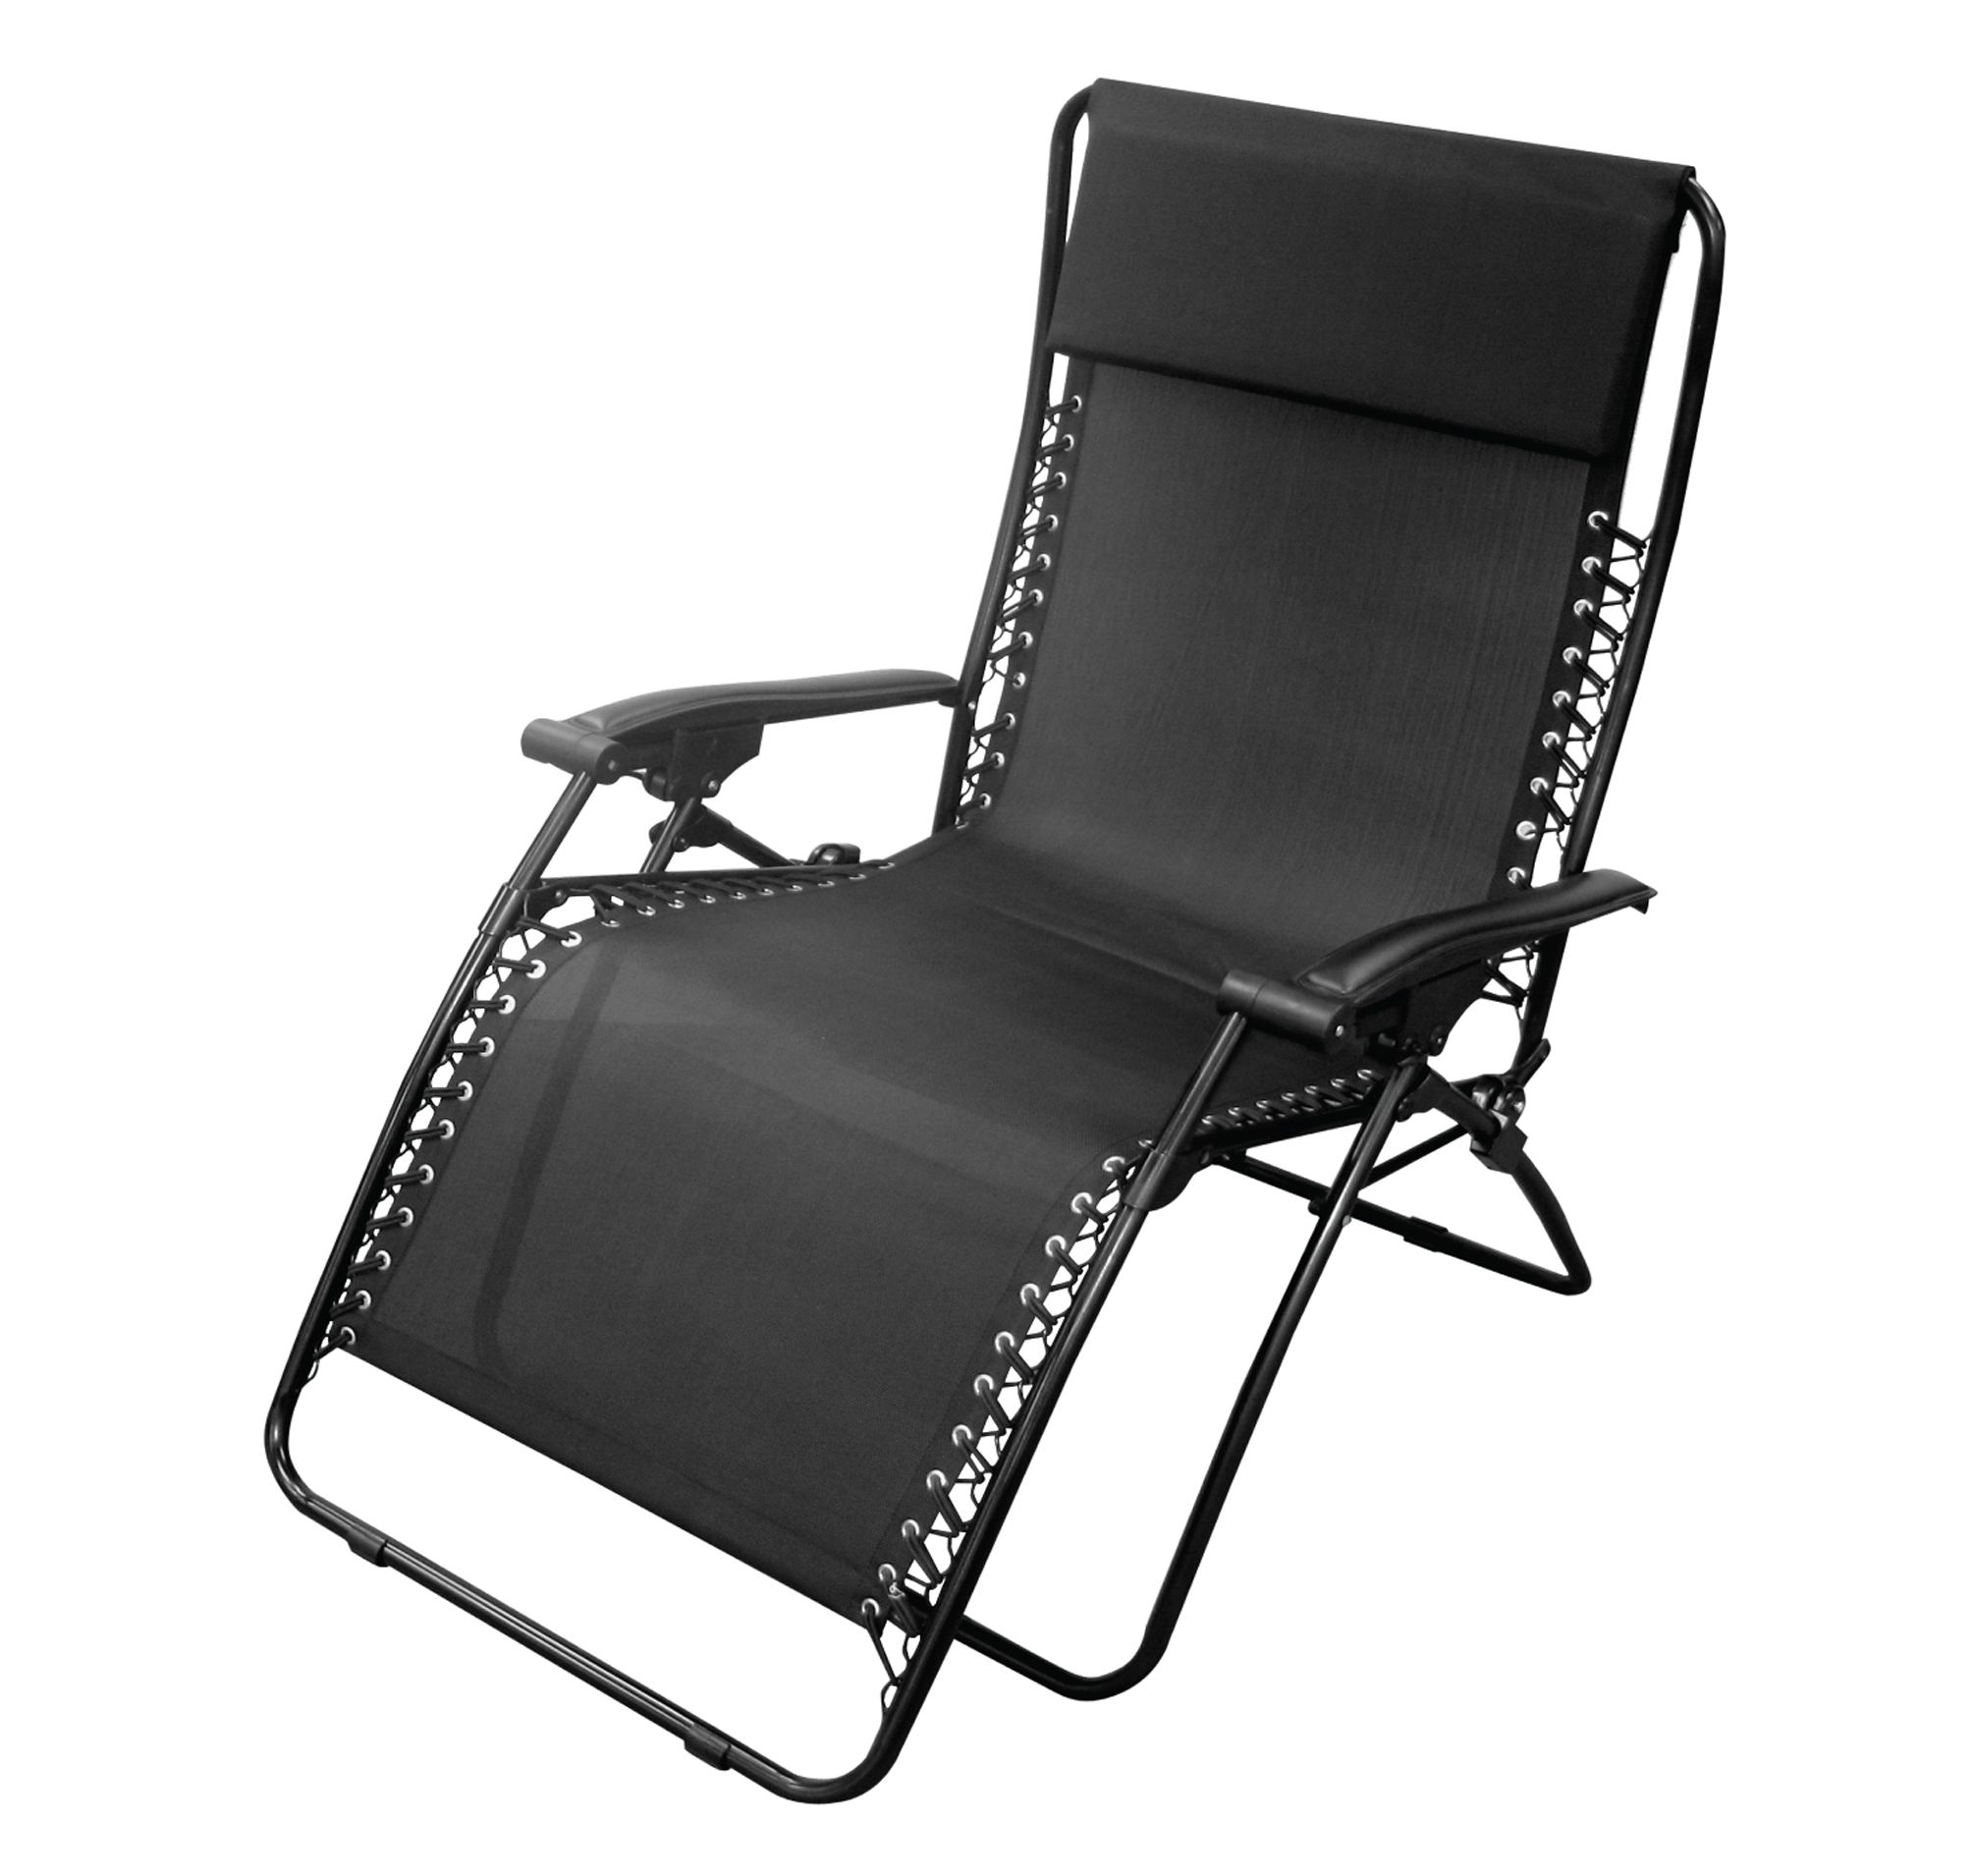 dick p gravity s outdoor goods gray sporting zero antigravity chair gci speckled is